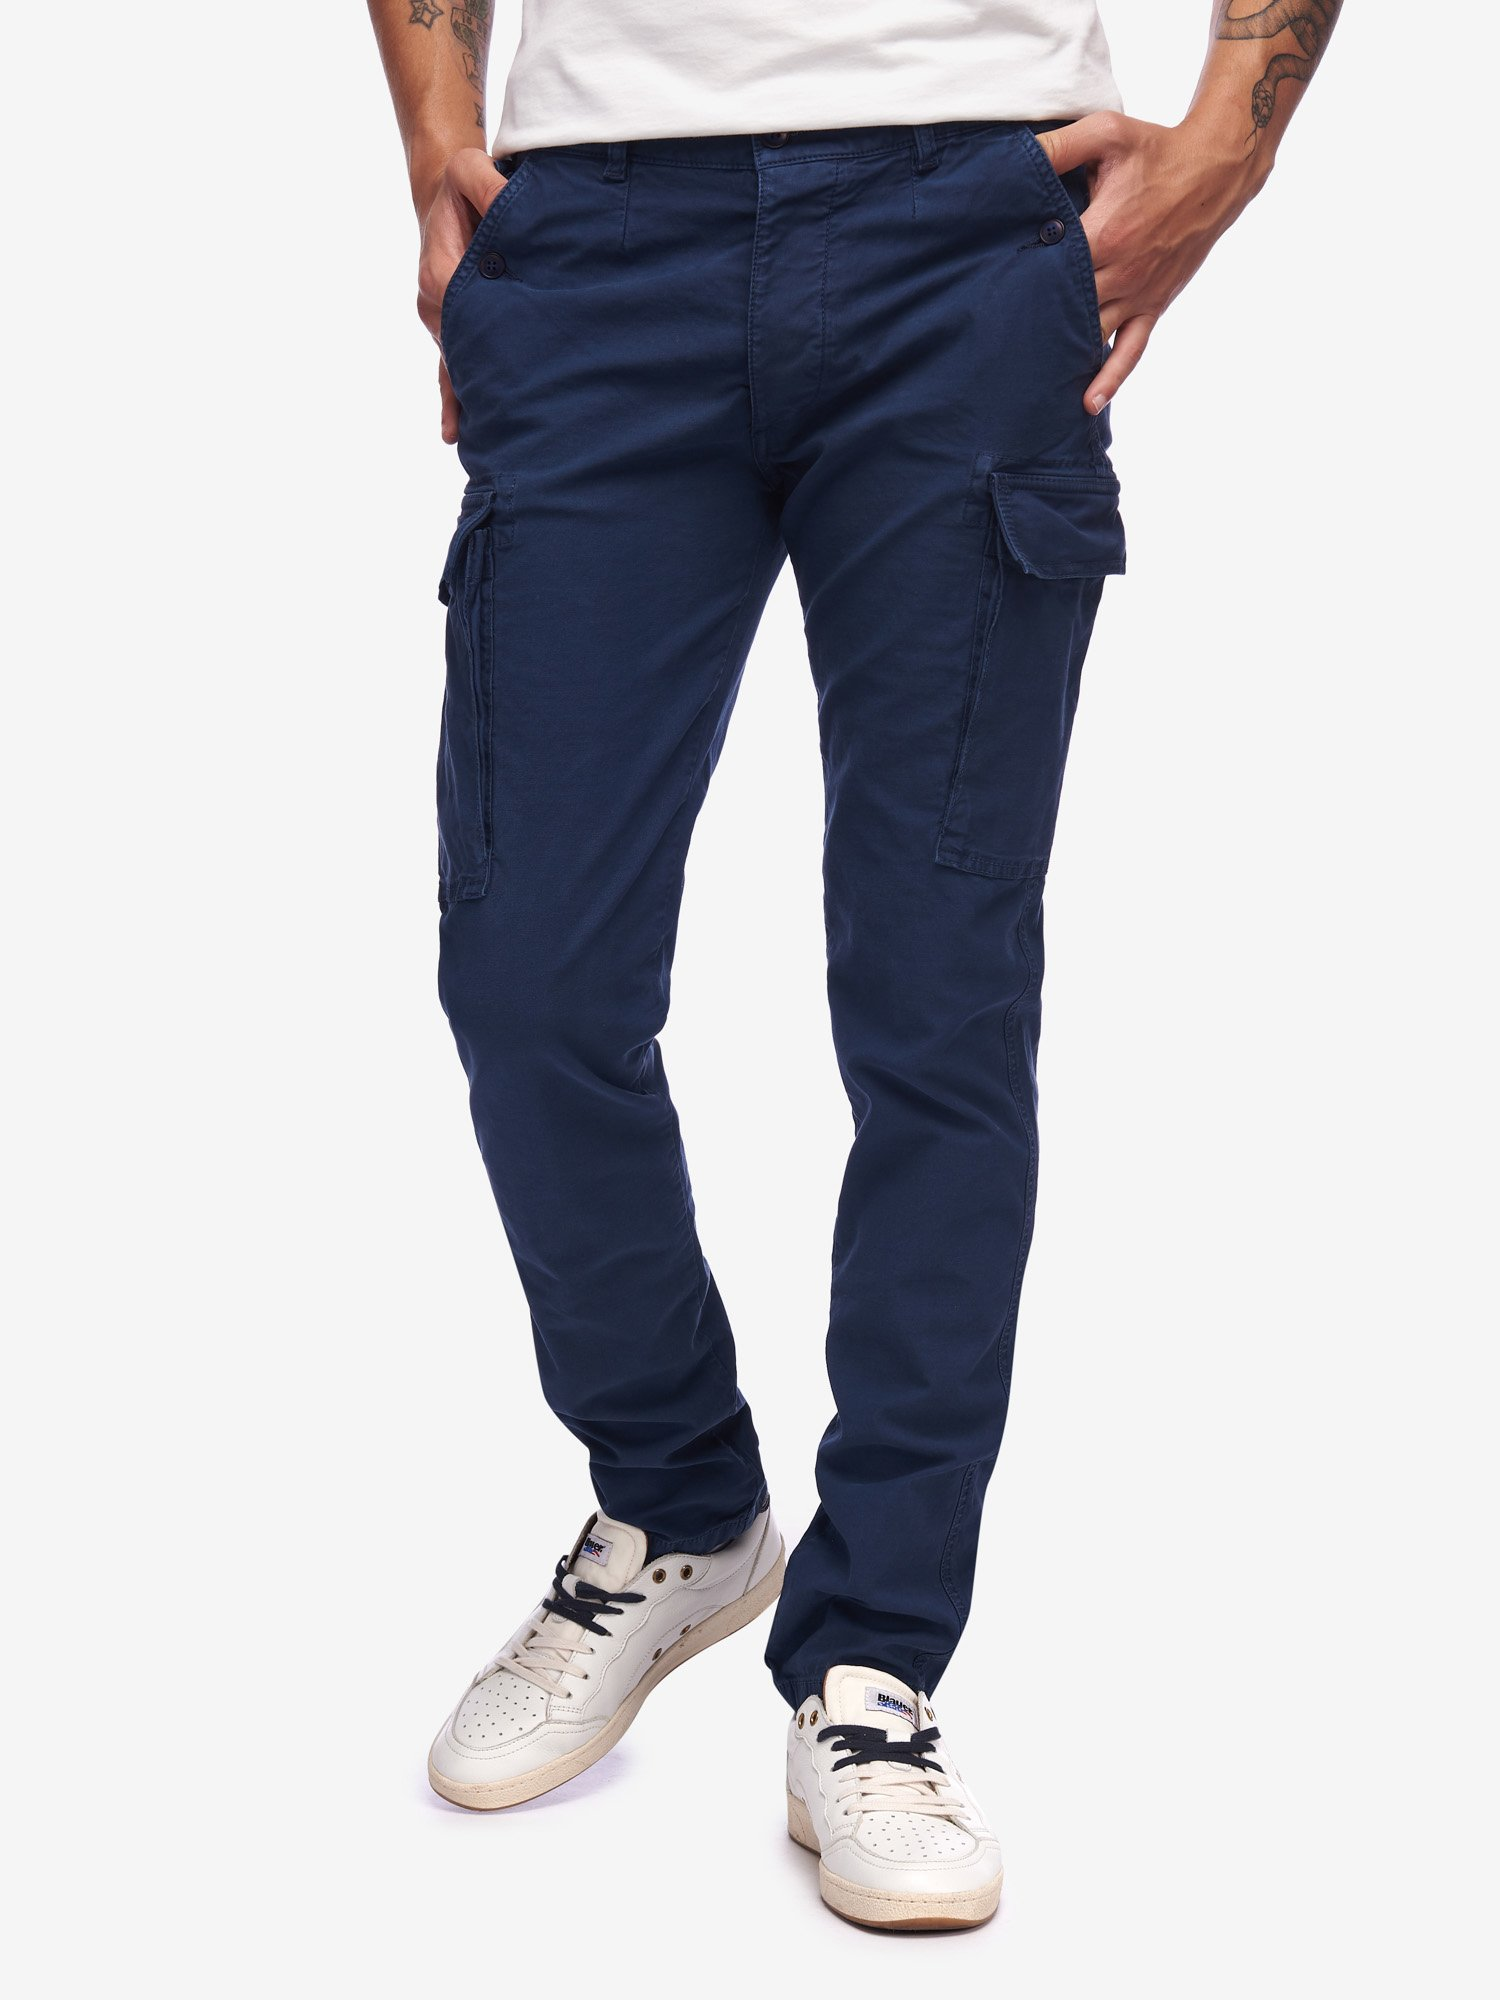 MULTIPOCKET MALFILE TROUSERS - Blauer